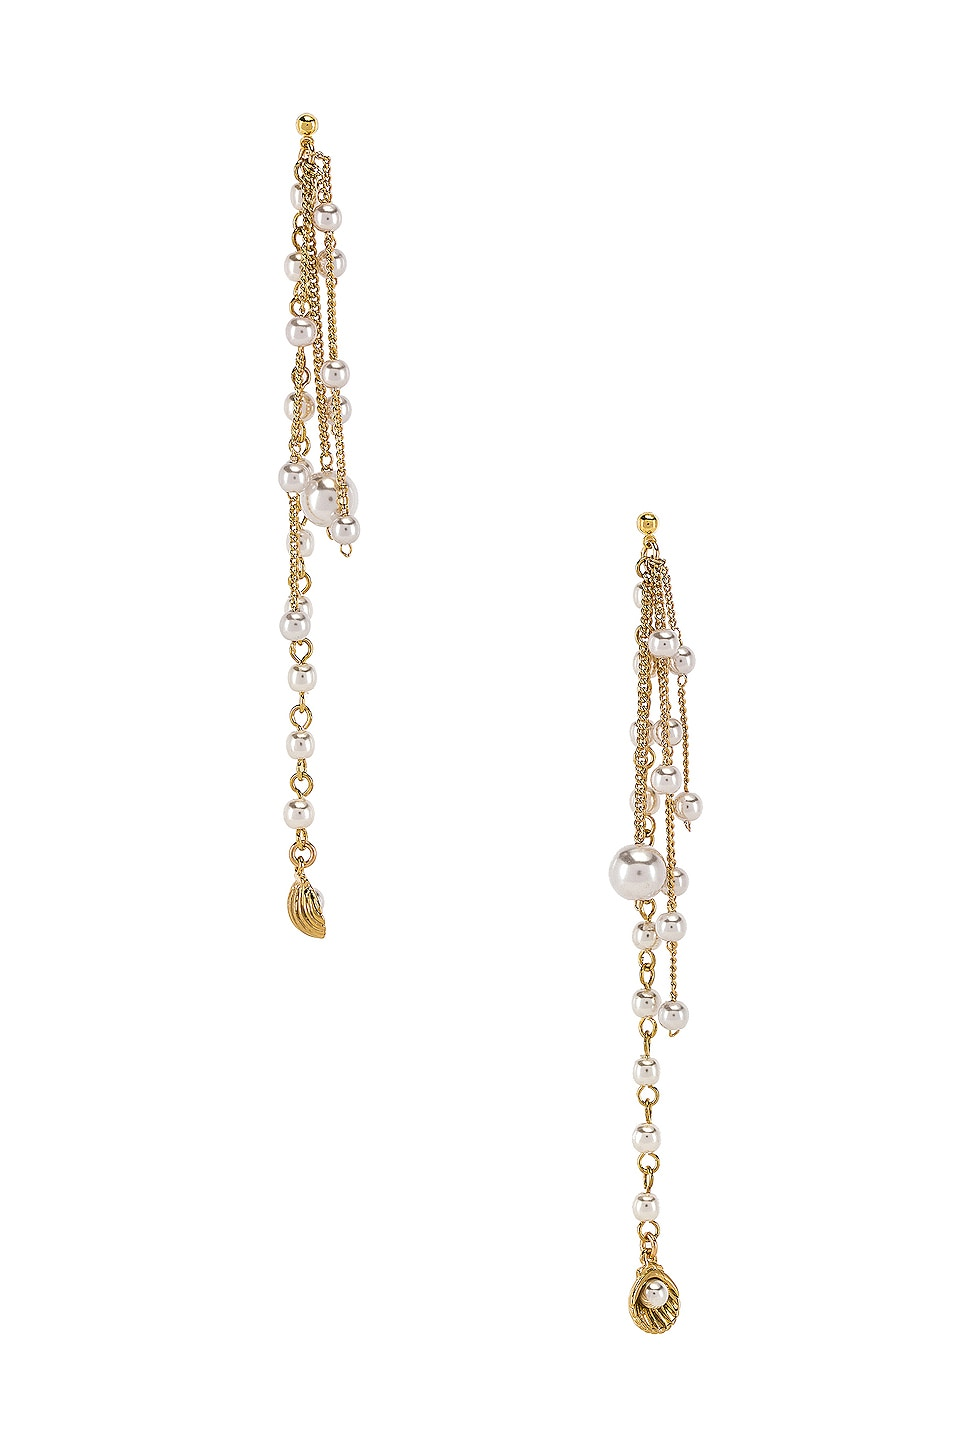 joolz by Martha Calvo Pearl Shaker Earrings in Gold